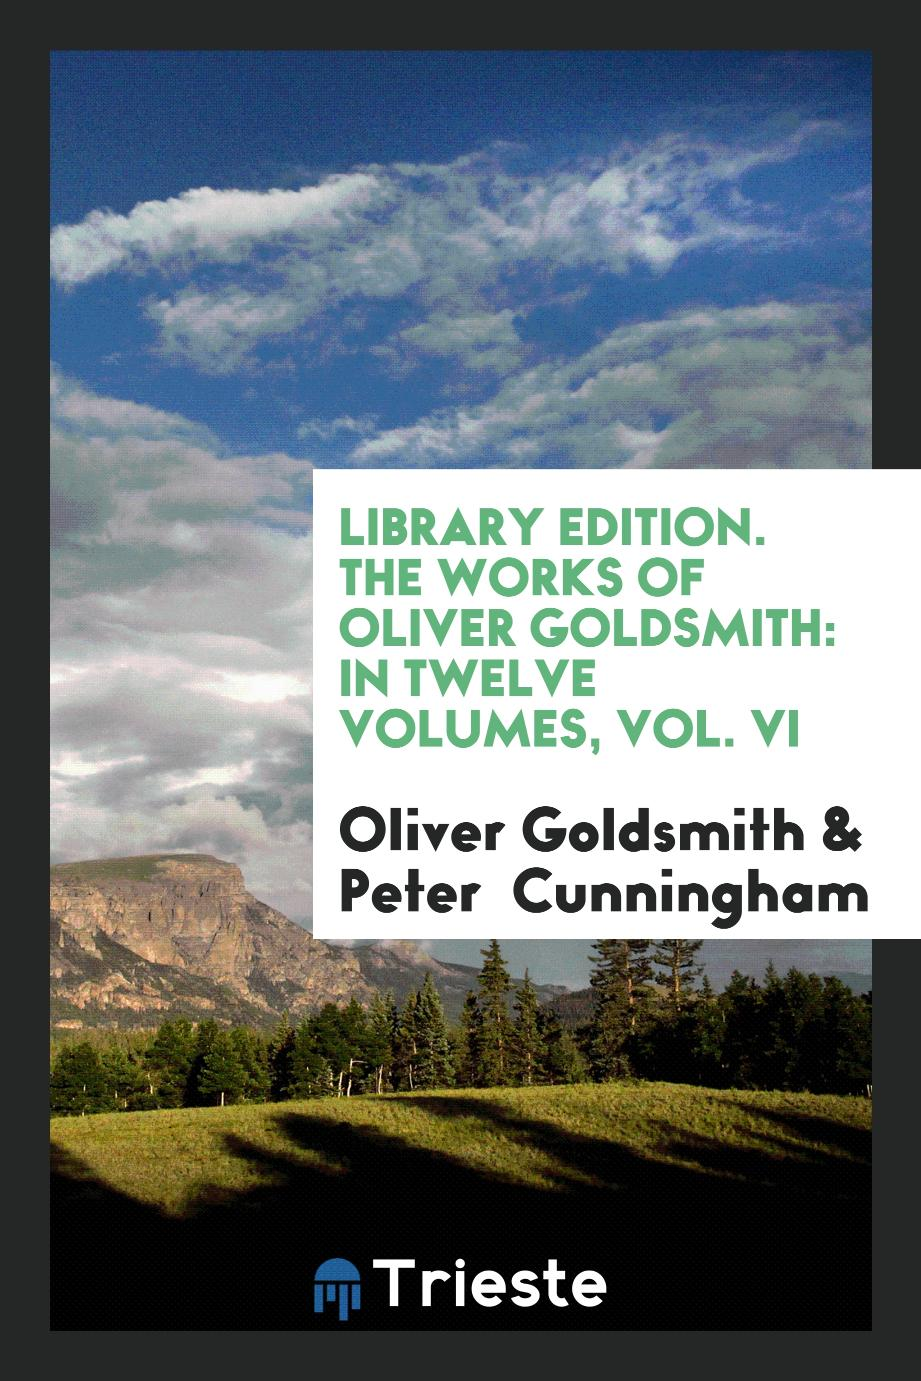 Oliver Goldsmith, Peter Cunningham - Library Edition. The Works of Oliver Goldsmith: In Twelve Volumes, Vol. VI